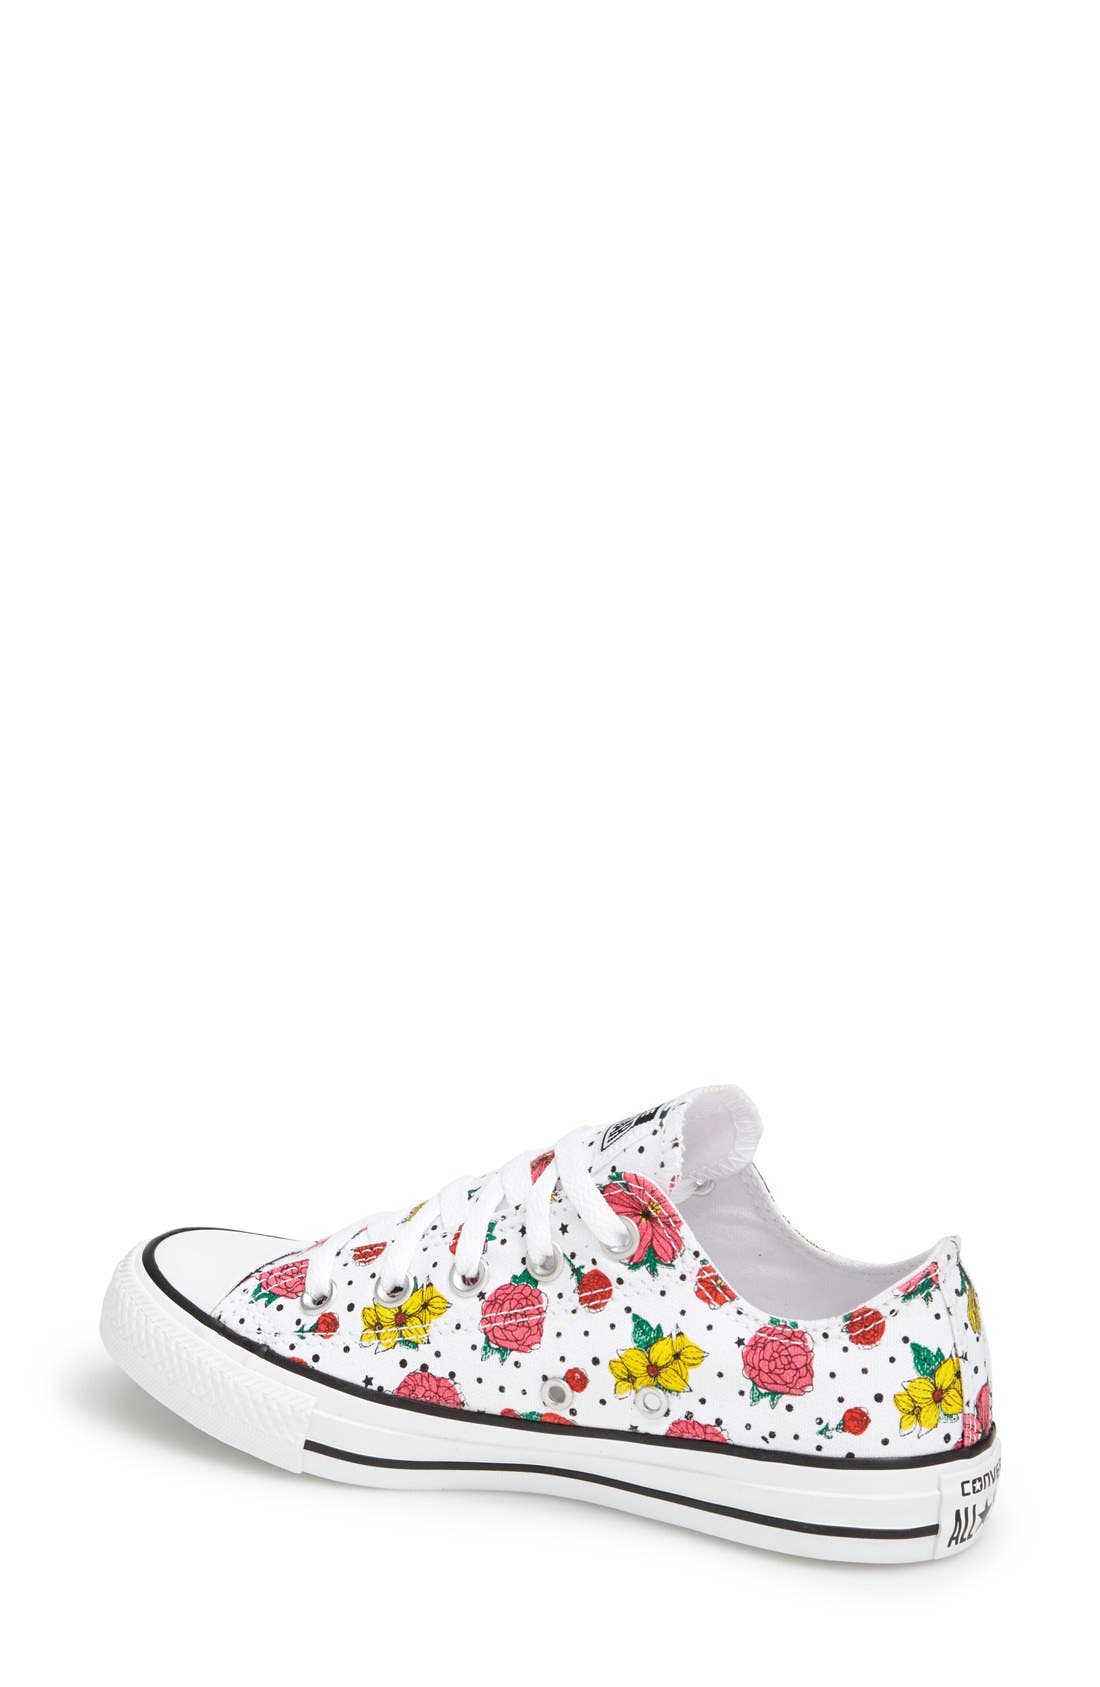 CONVERSE,                             Chuck Taylor<sup>®</sup> All Star<sup>®</sup> Floral Polka Dot Low Top Sneaker,                             Alternate thumbnail 4, color,                             007